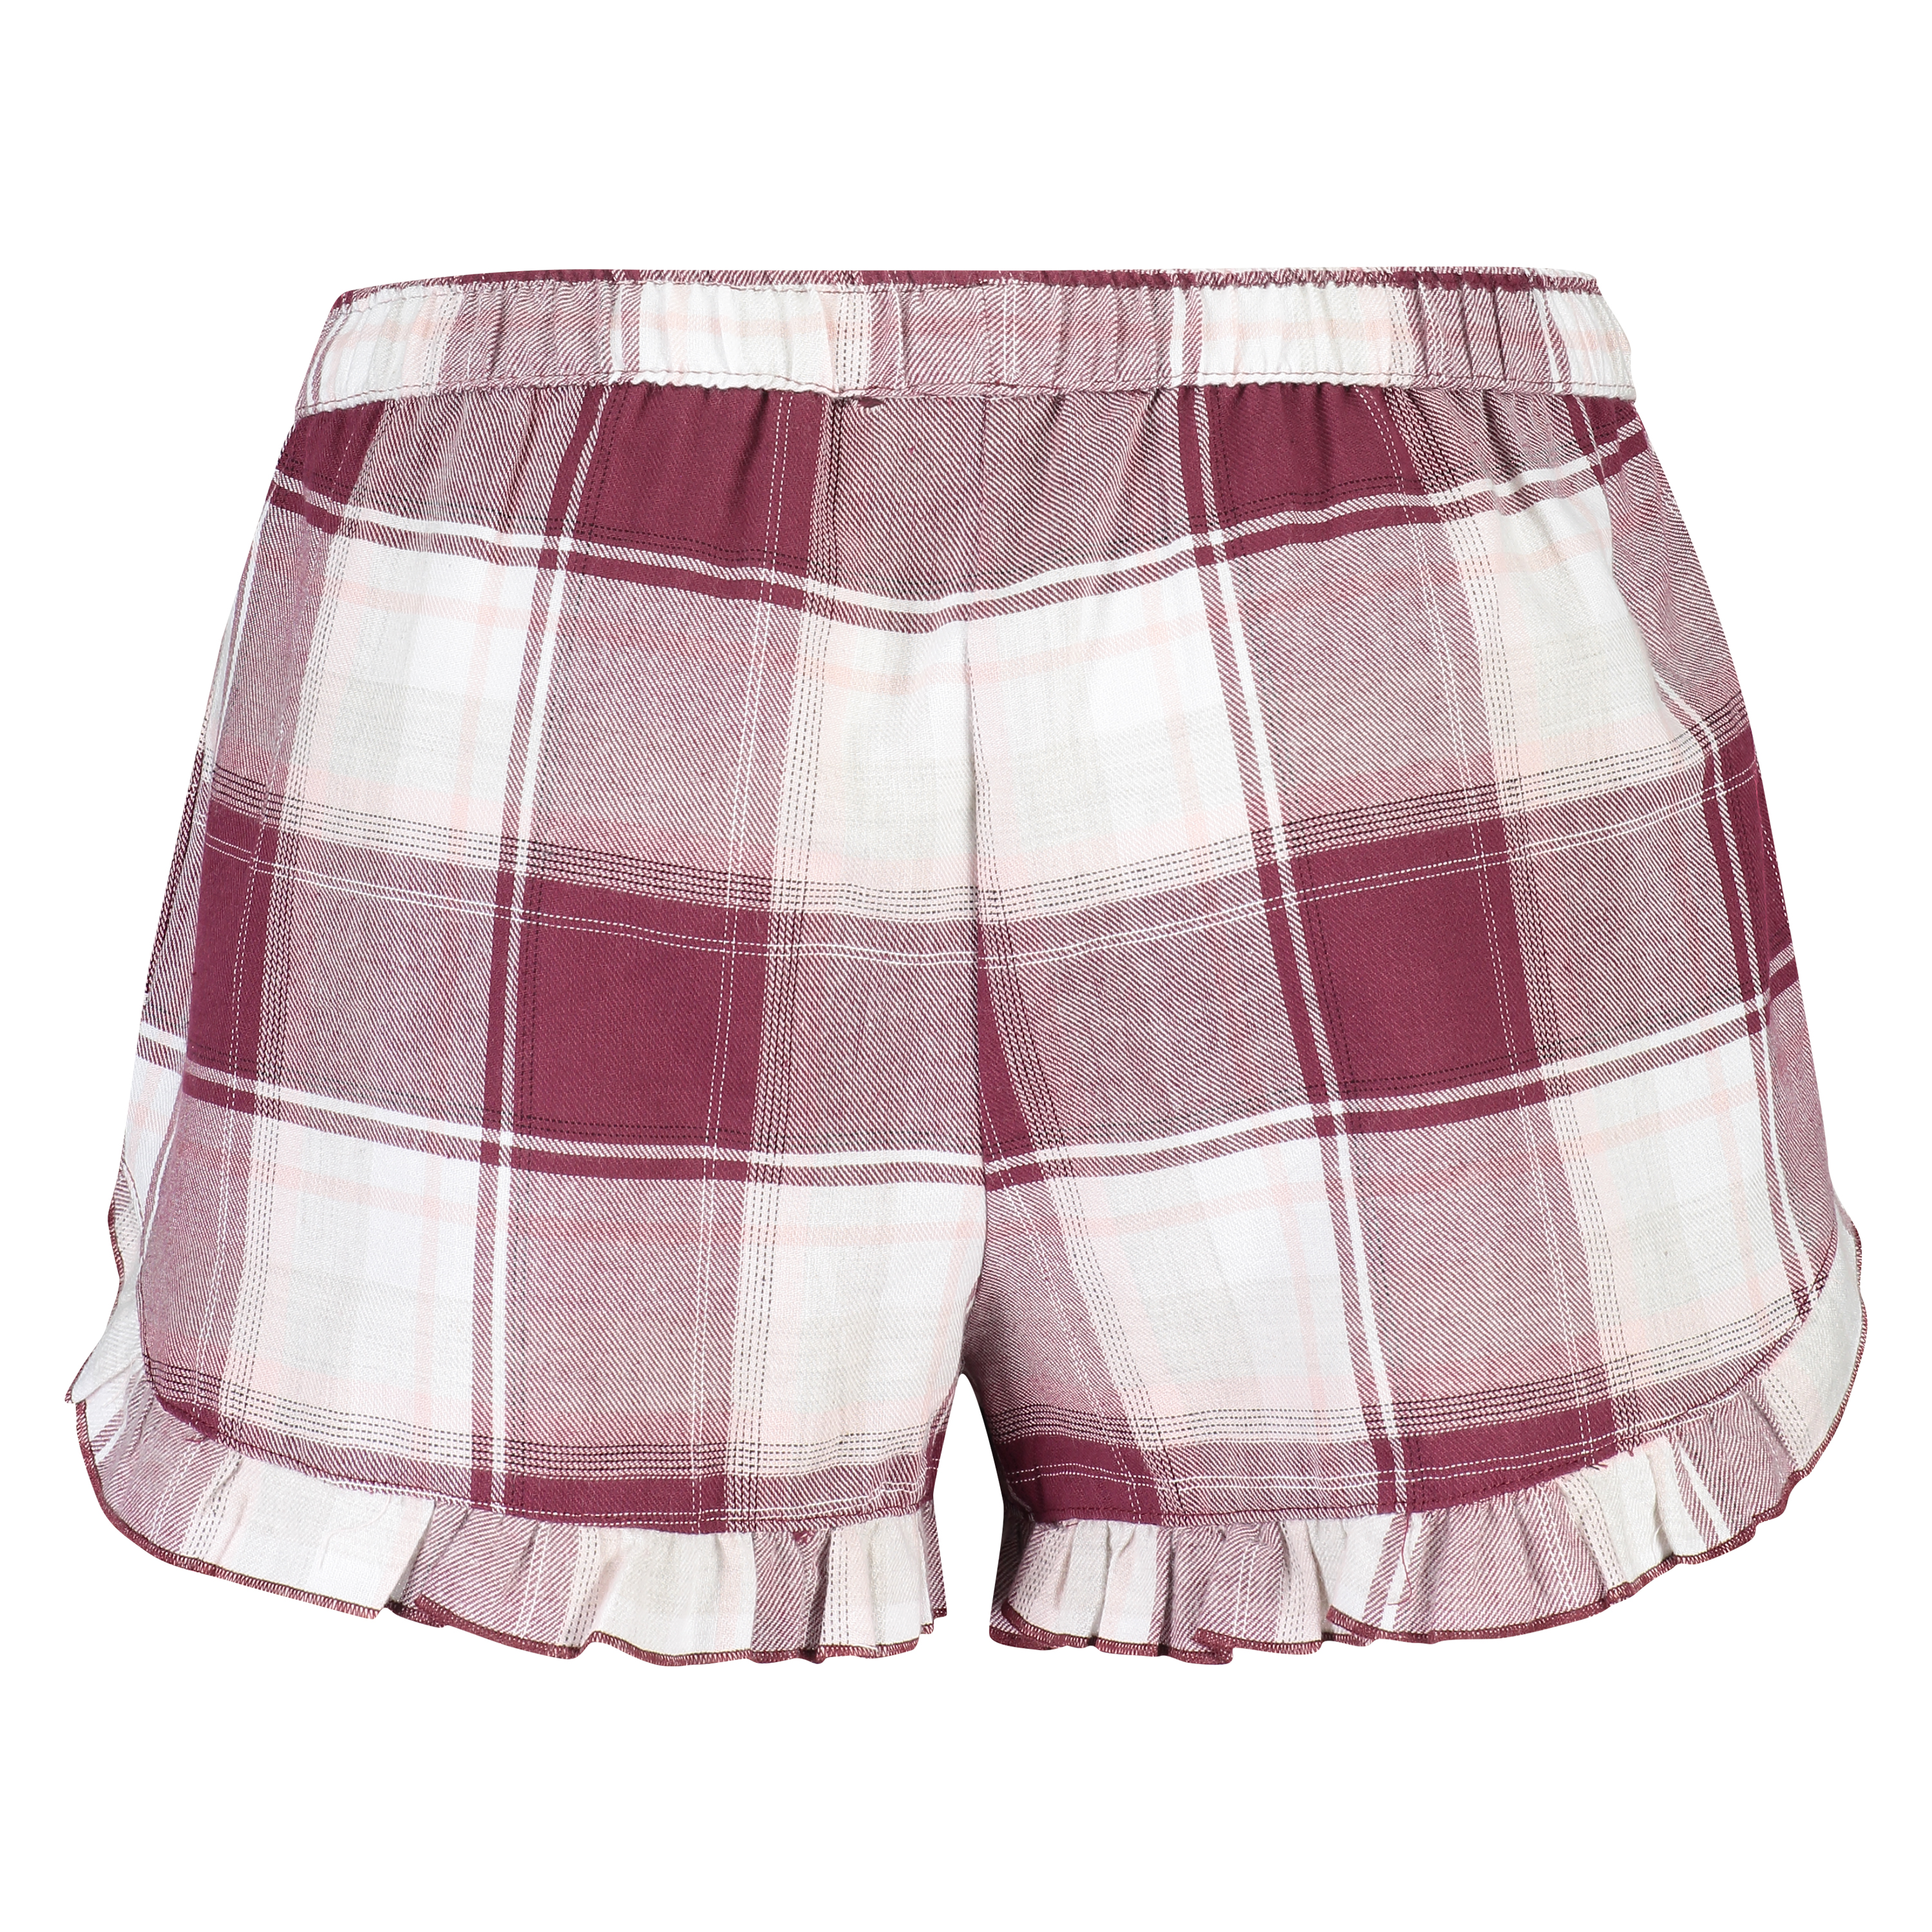 Pyjamashort Check, Rood, main